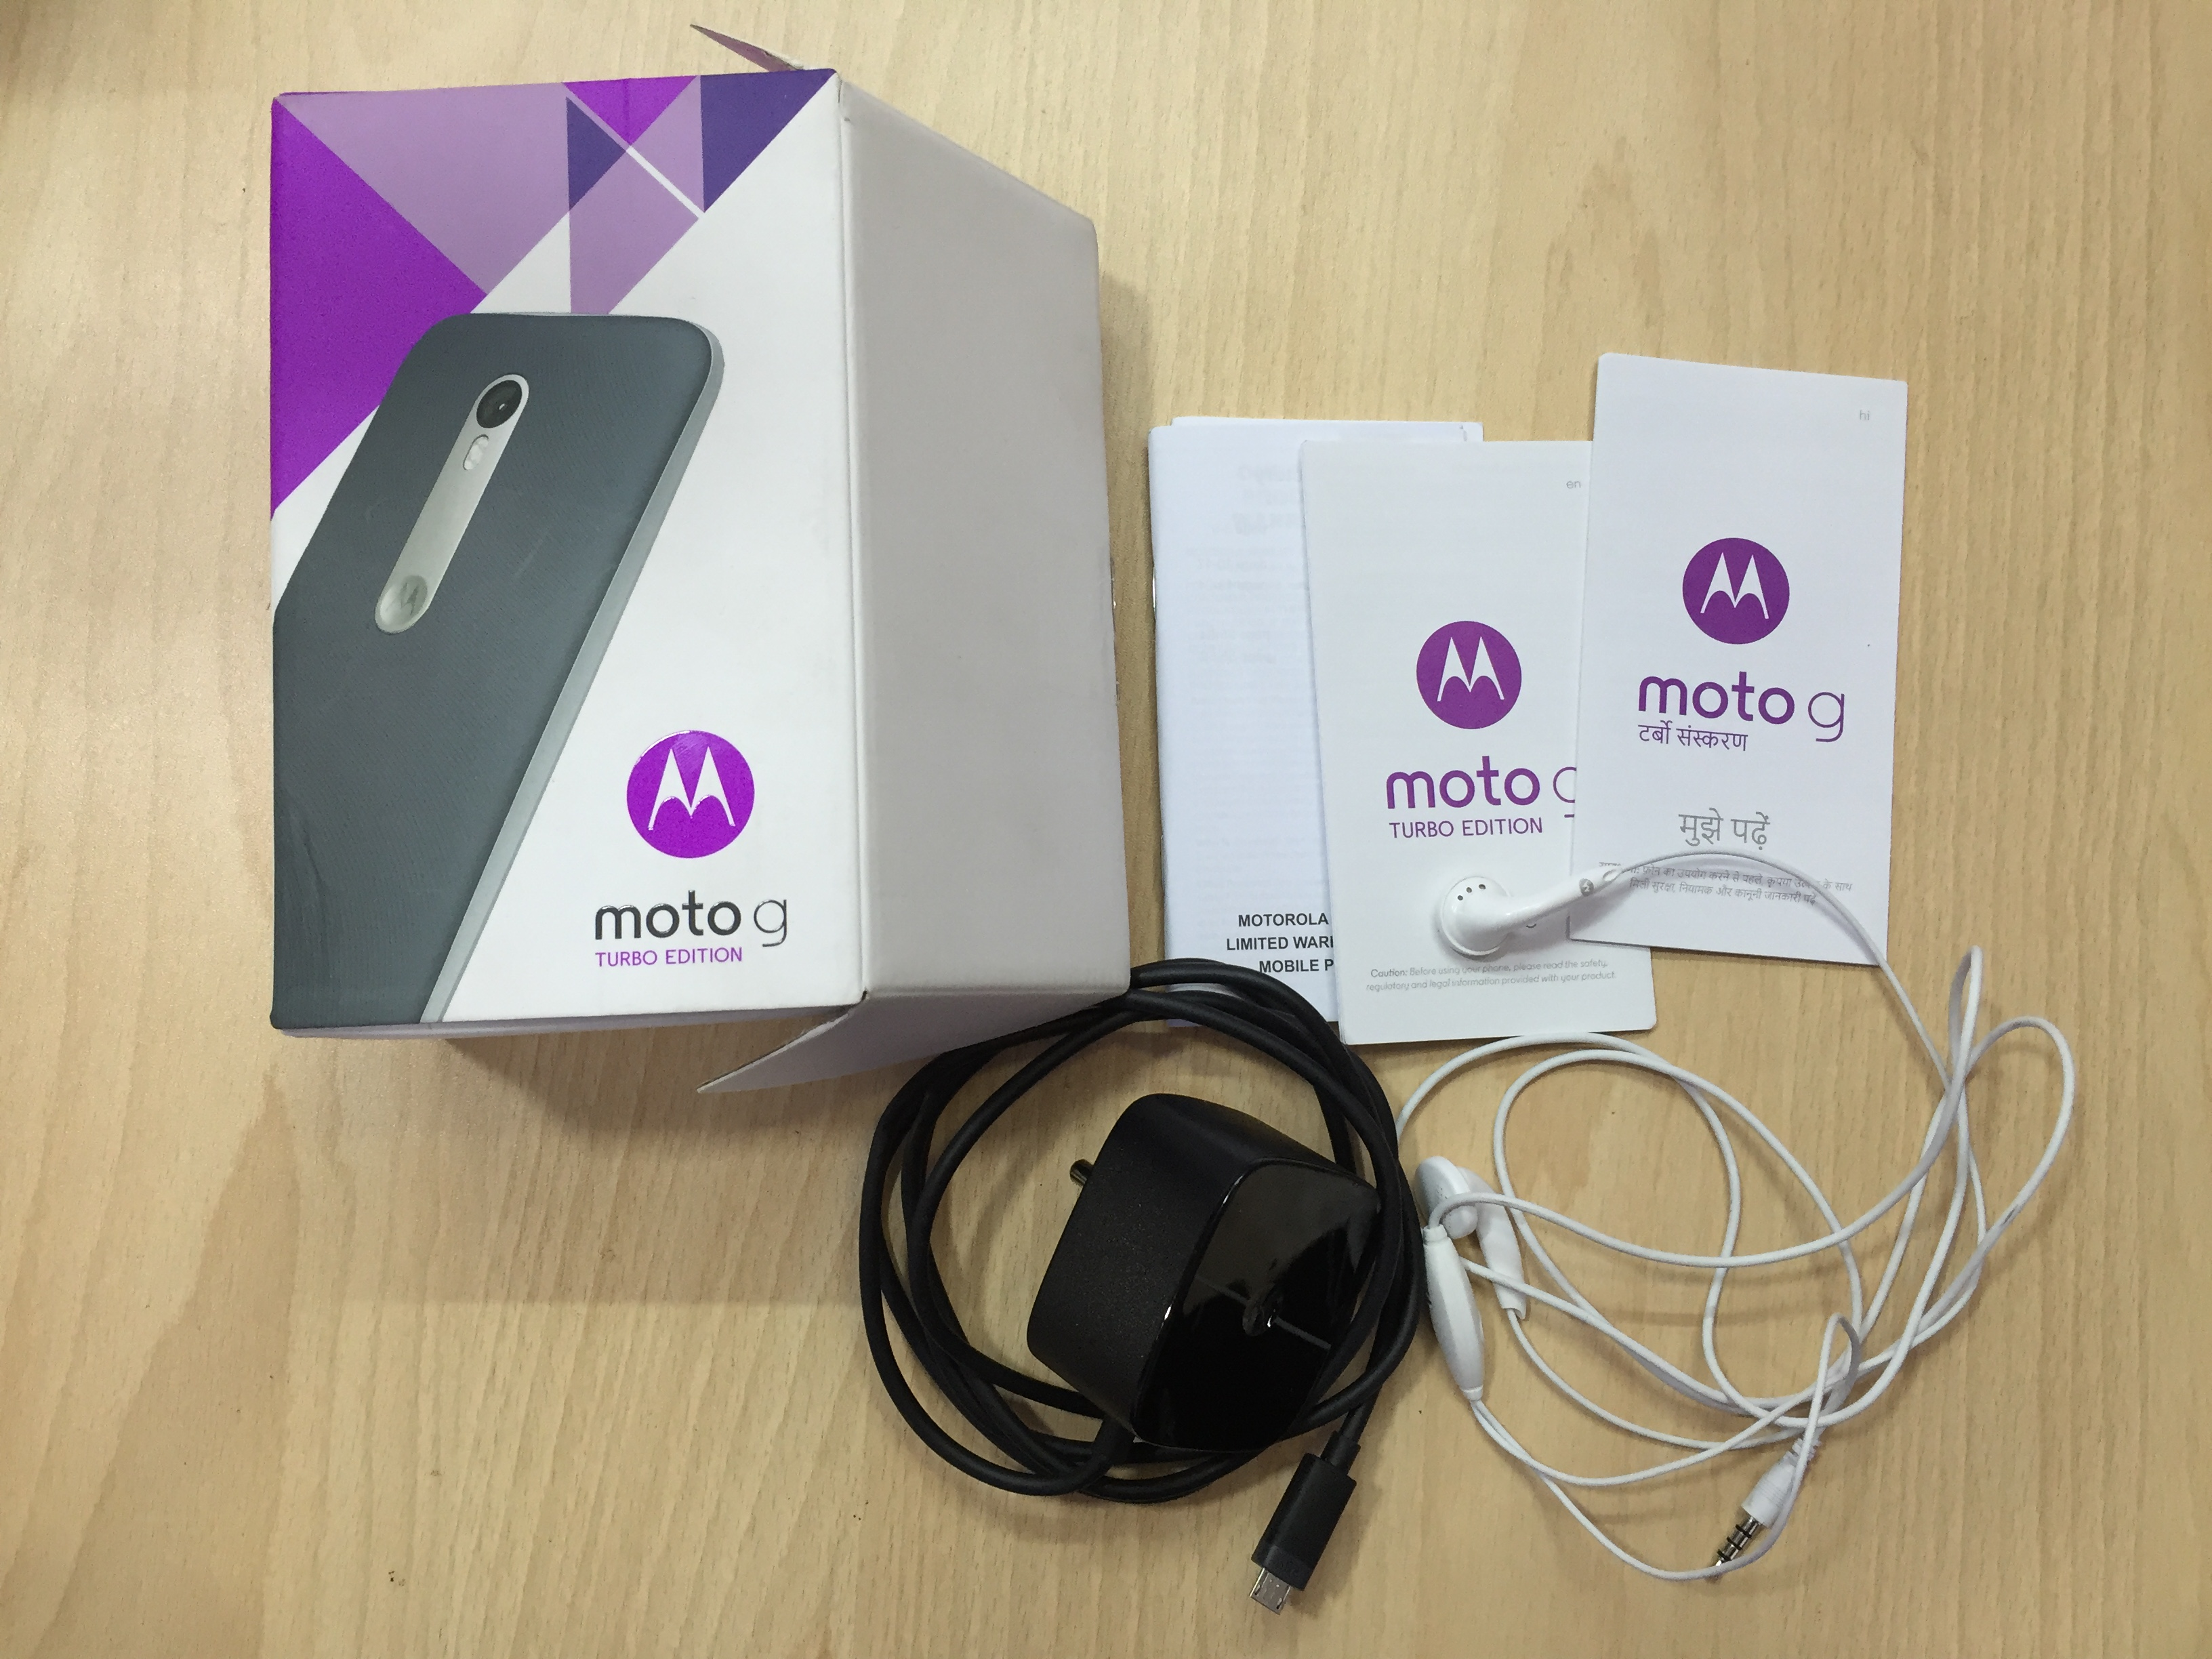 fd2bd1672d3 Moto G Turbo Edition Real Life Usage Review - Gadgets To Use